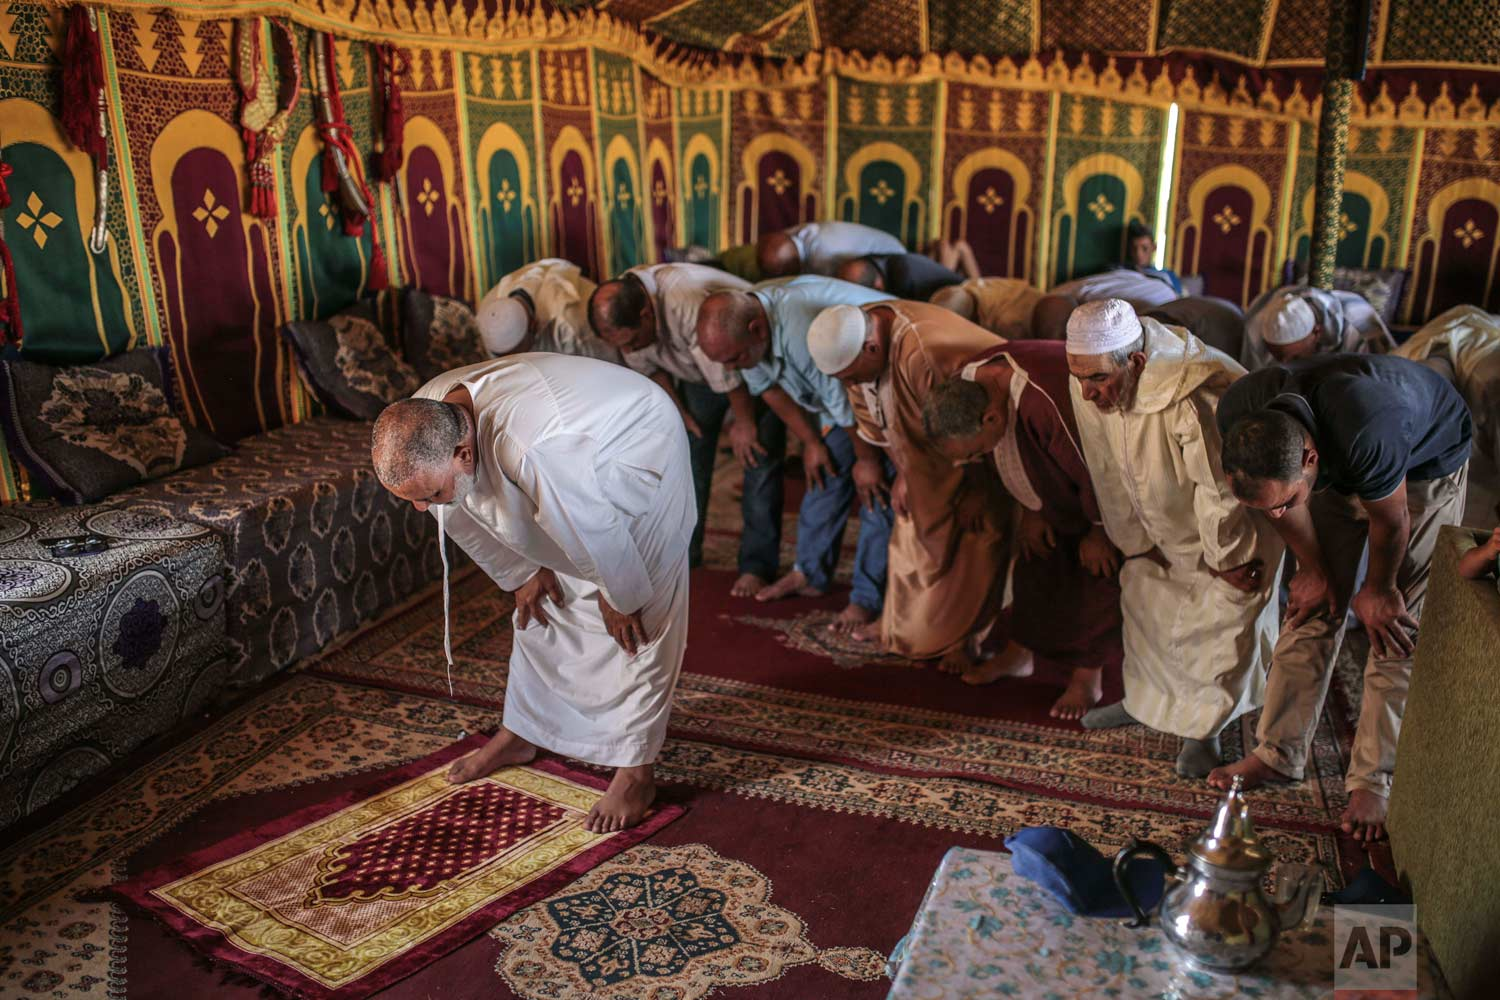 In this Thursday, Aug. 17, 2017 photo, people pray in a tent before the start of Tabourida, a traditional horse riding show also known as Fantasia, in Mansouria, near Casablanca, Morocco. (AP Photo/Mosa'ab Elshamy)